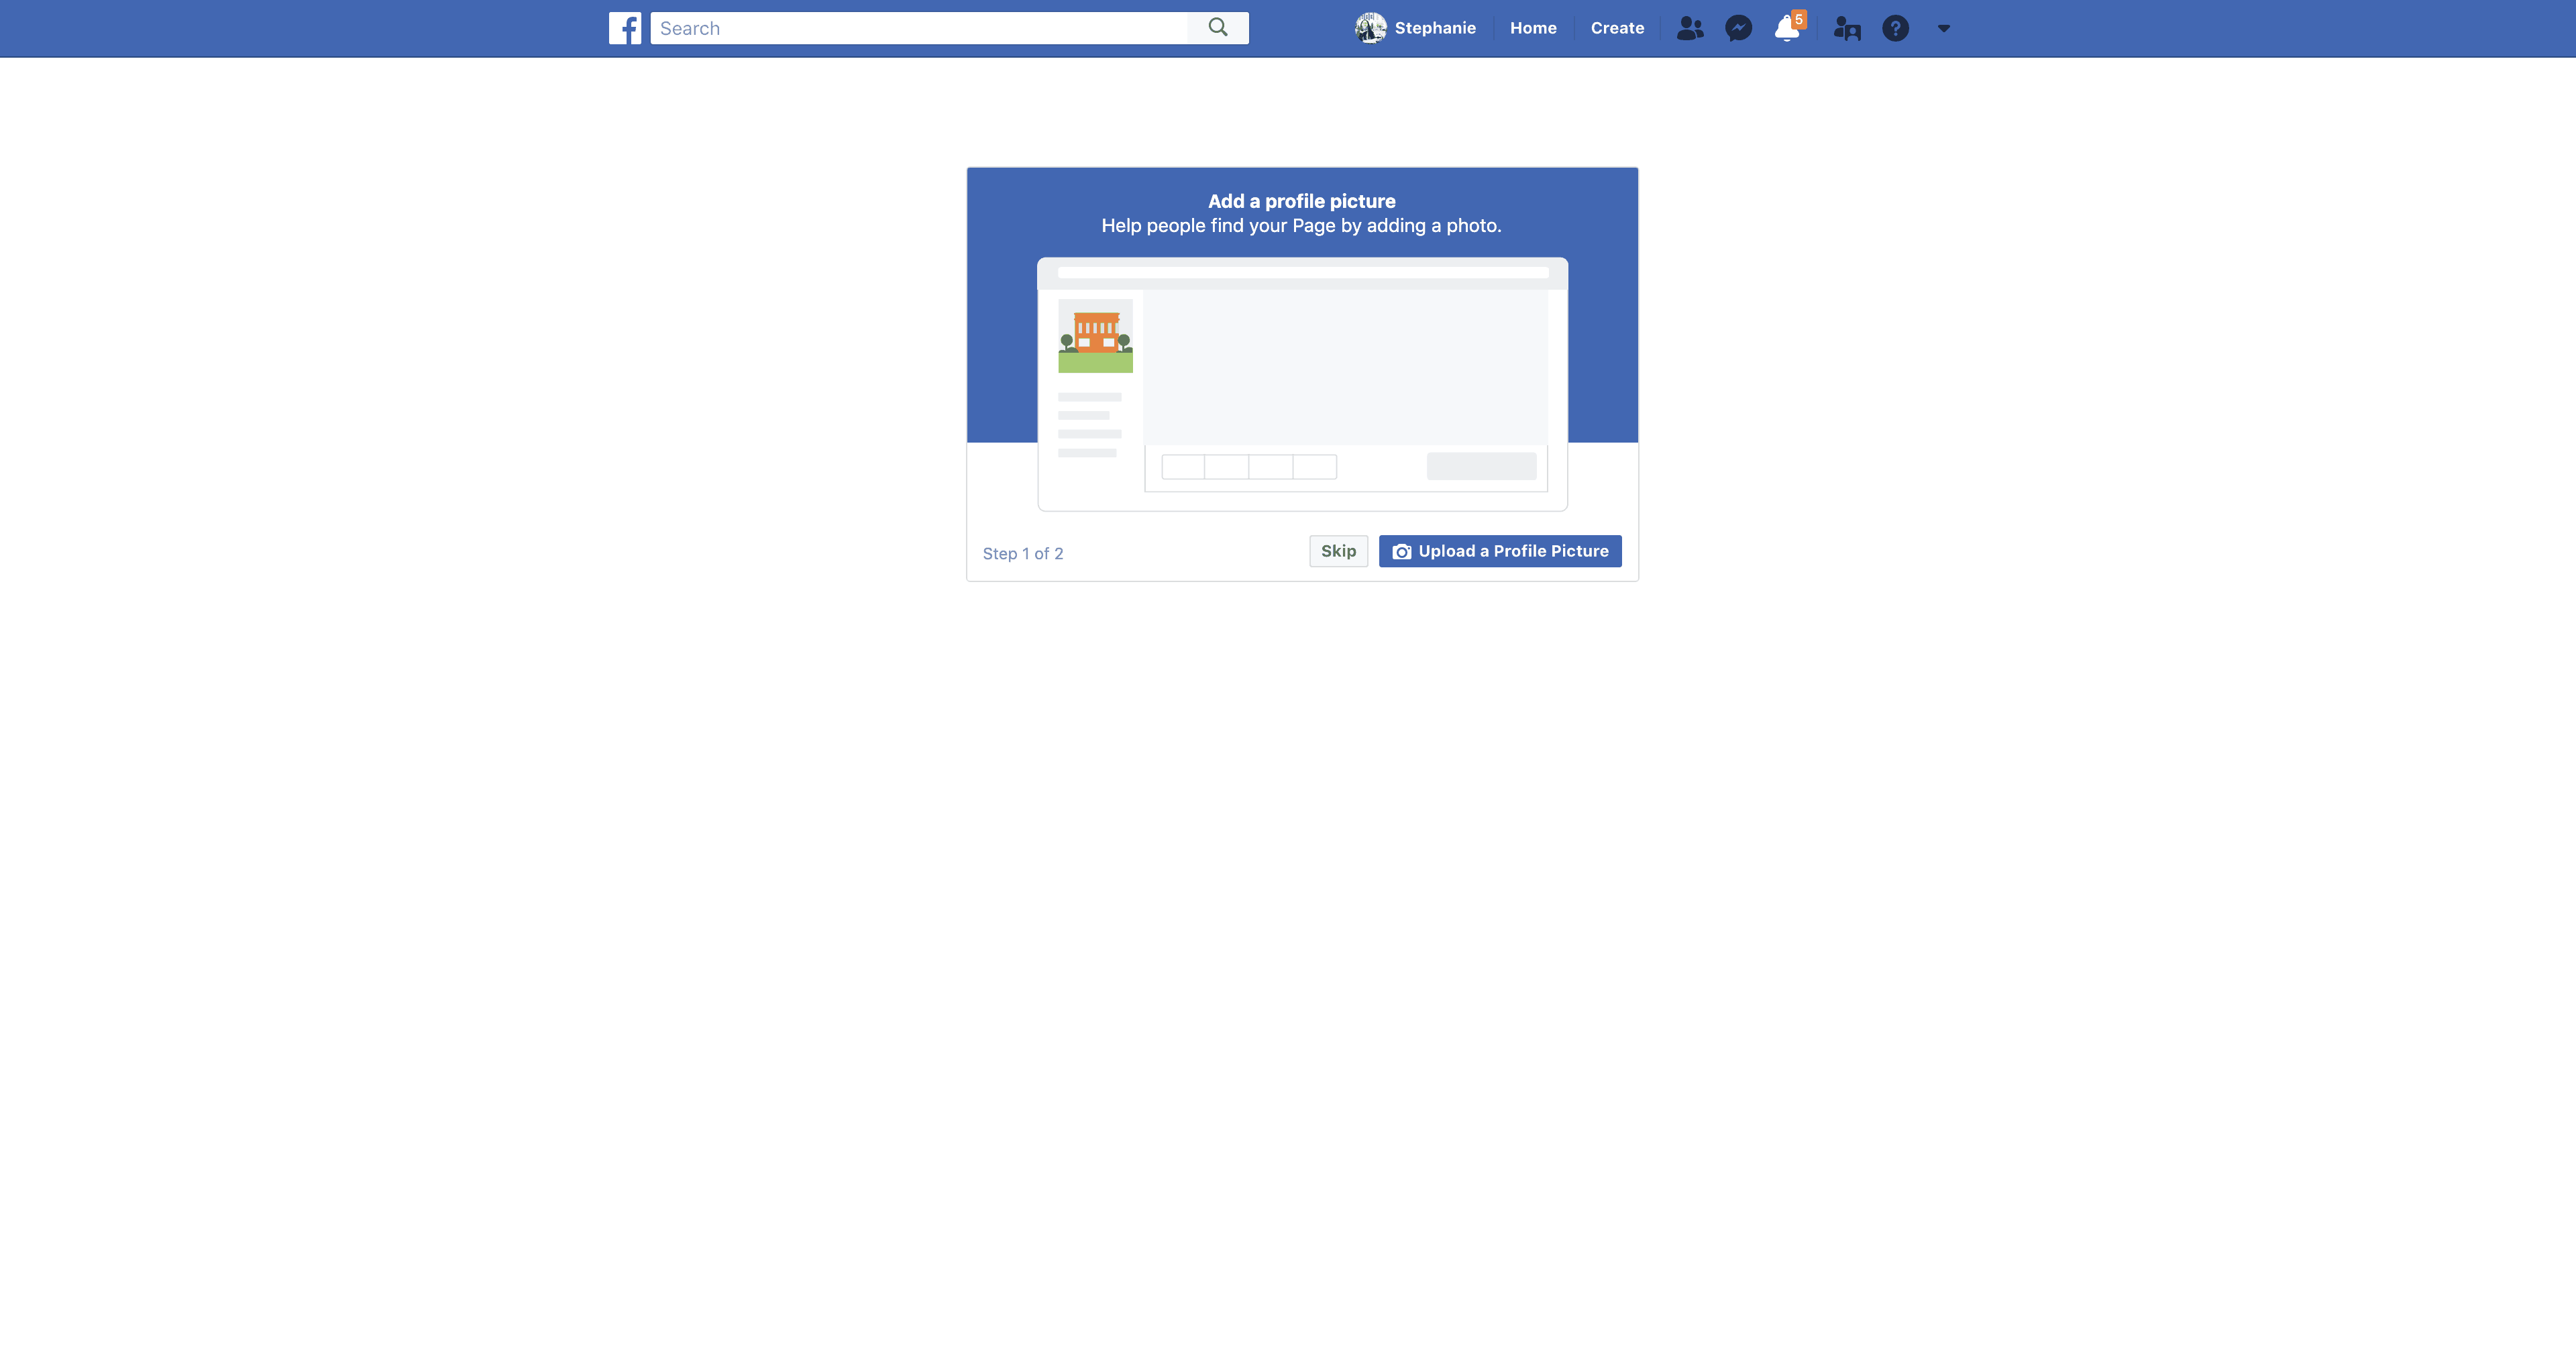 Add Profile Picture For New Page by Facebook from UIGarage